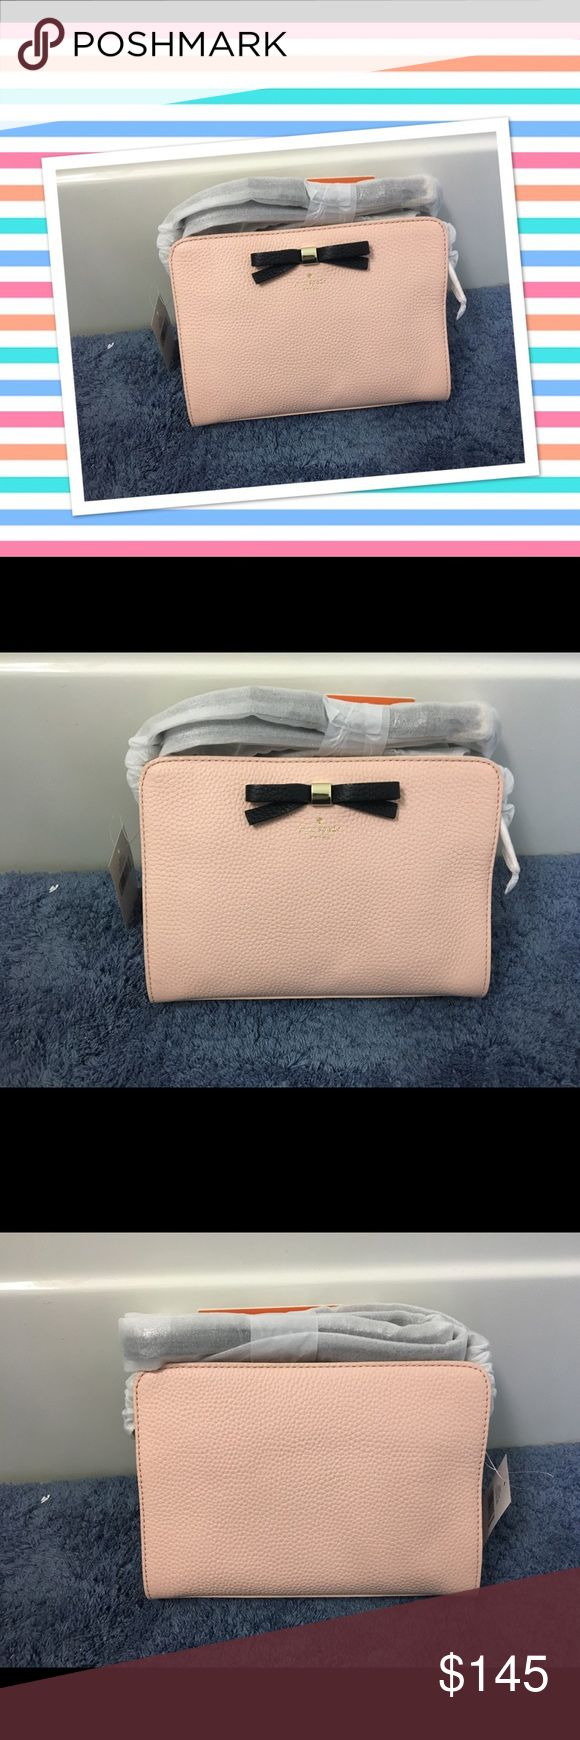 """Brand new Kate Spade Henderson street Fannie ❤️😍 Brand new. Still in packaging . Gorgeous pink urchin color. Adjustable cross body strap . A prim bow details this clean lined Kate spade. Zip closure , lined. 9"""" W 2""""D6.5 """" H . I want to buy something else on Posh that's why selling this beautiful bag 💕latest model just released this June  ! Offers welcome .Authenticity code posted in Pics kate spade Bags Crossbody Bags"""